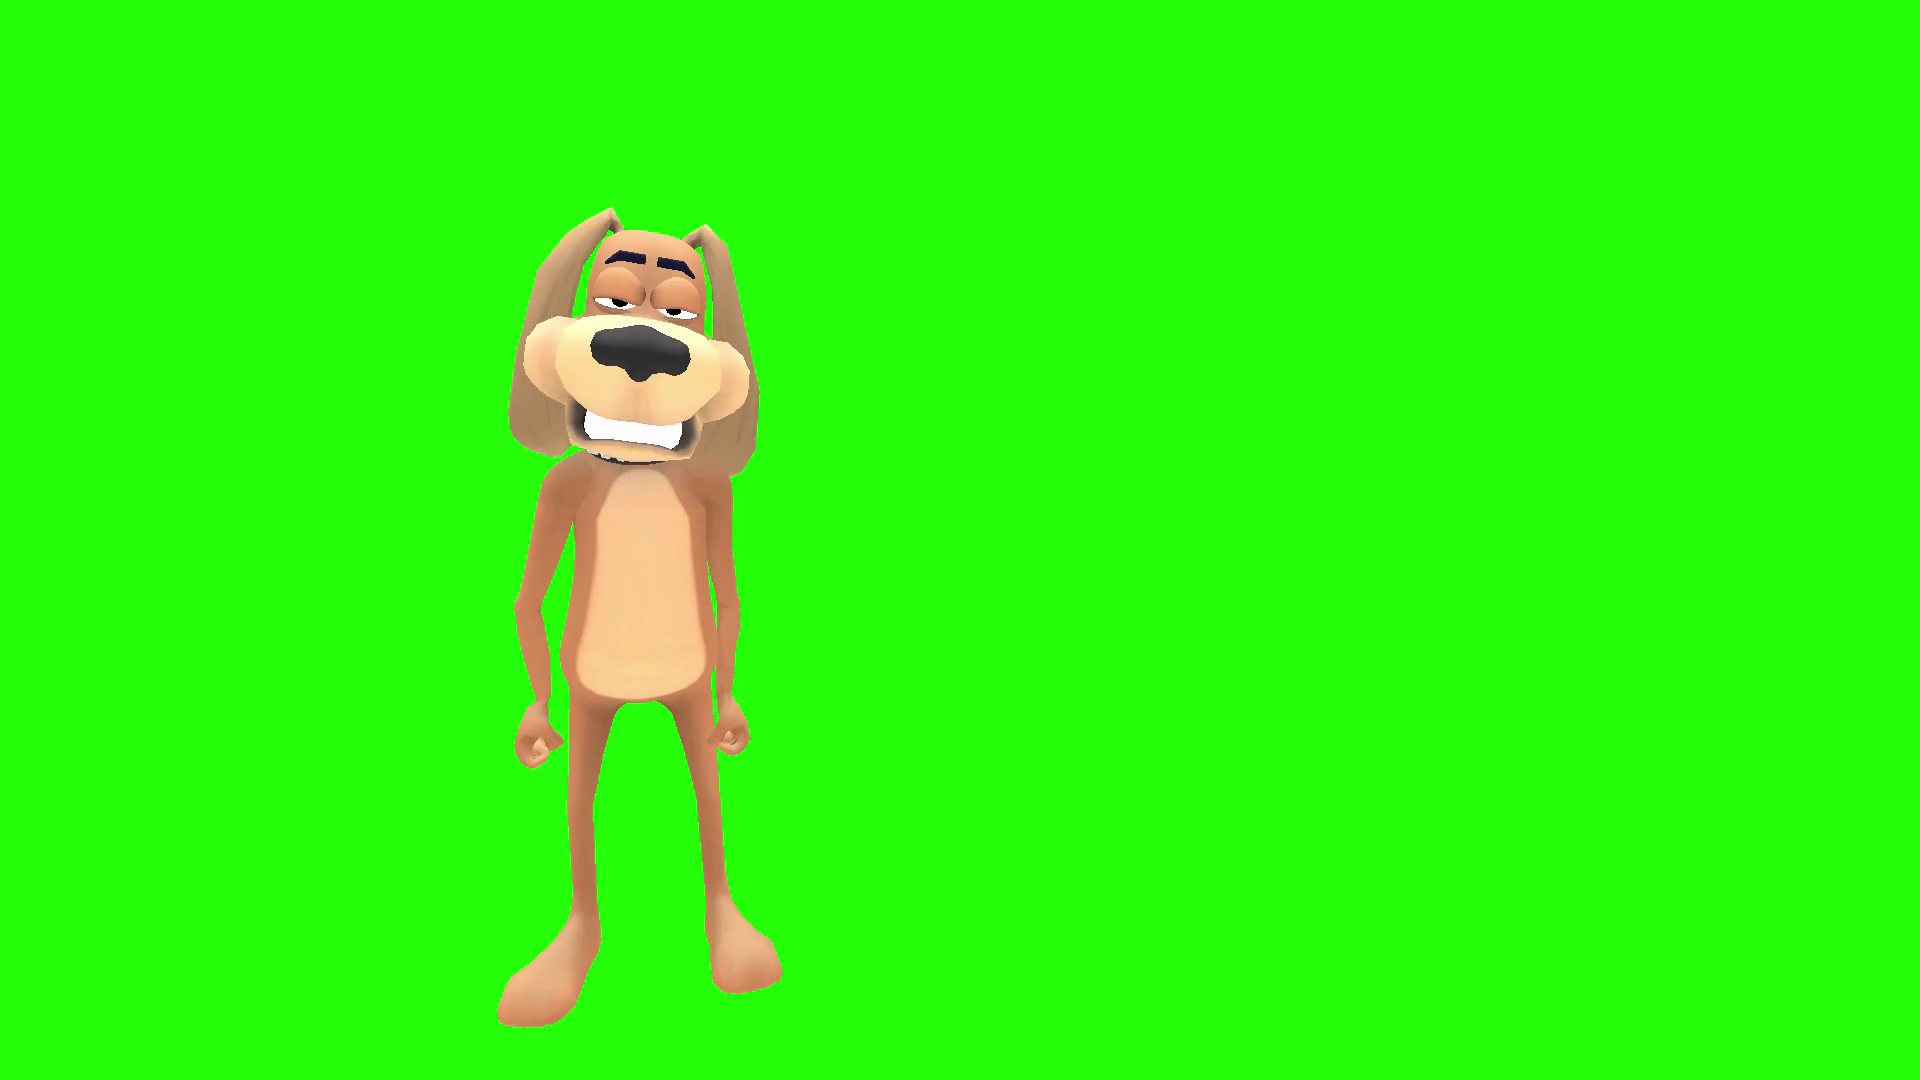 Animated angry dog character shake fist Motion Background.